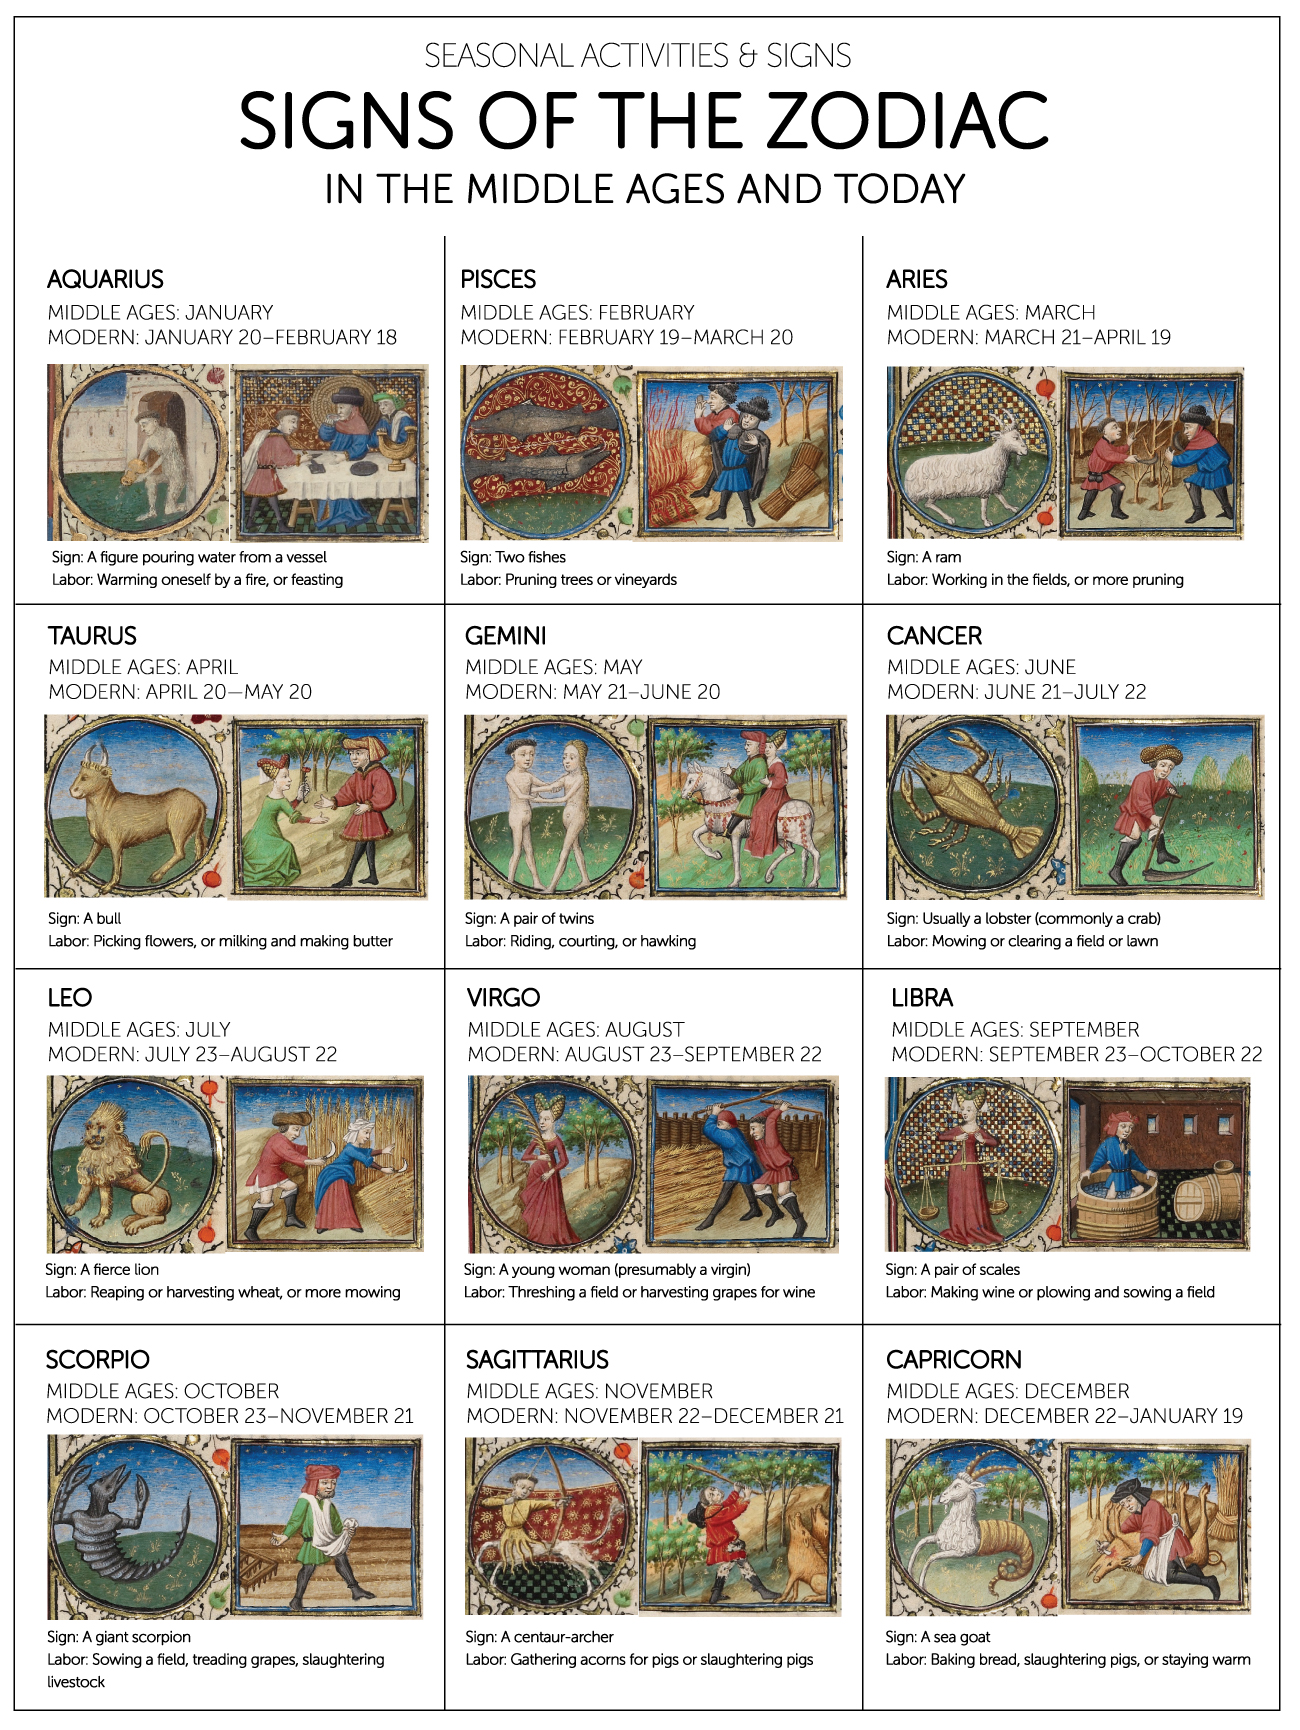 Zodiac Chart: Aquarius: a figure pouring water from a vessel; labor: warming oneself by a fire, or feasting (Middle Ages: January; modern: January 20 to February 18). Pisces: two fishes; labor: pruning trees or vineyards (Middle Ages: February; modern: February 19 to March 20). Aries: a ram; labor: digging, working in the fields, or more pruning (Middle Ages: March; modern: March 21 to April 19). Taurus: a bull; labor: picking flowers, hawking, or milking and making butter (Middle Ages: April; modern: April 20 to May 20). Gemini: a pair of twins; labor: riding, courting, or more hawking (Middle Ages: May; modern: May 21 to June 20). Cancer: usually a lobster (but more commonly identified as a crab); labor: mowing or clearing a field or lawn (Middle Ages: June; modern: June 21 to July 22). Leo: a fierce lion; labor: reaping or harvesting wheat, or more mowing (Middle Ages: July; modern: July 23 to August 22). Virgo: a young woman (presumably a virgin); labor: threshing a field or harvesting grapes for wine (Middle Ages: August; modern: August 23 to September 22). Libra: a pair of scales (for balancing or measuring weight, in economic or legal terms); labor: making wine or plowing and sowing a field (Middle Ages: September; modern: September 23 to October 22). Scorpio: a giant scorpion; labor: sowing a field, treading grapes, or slaughtering livestock (Middle Ages: October; modern: October 23 to November 21). Sagittarius: a centaur-archer; labor: gathering acorns for pigs or slaughtering pigs (Middle Ages: November; modern: November 22 to December 21).